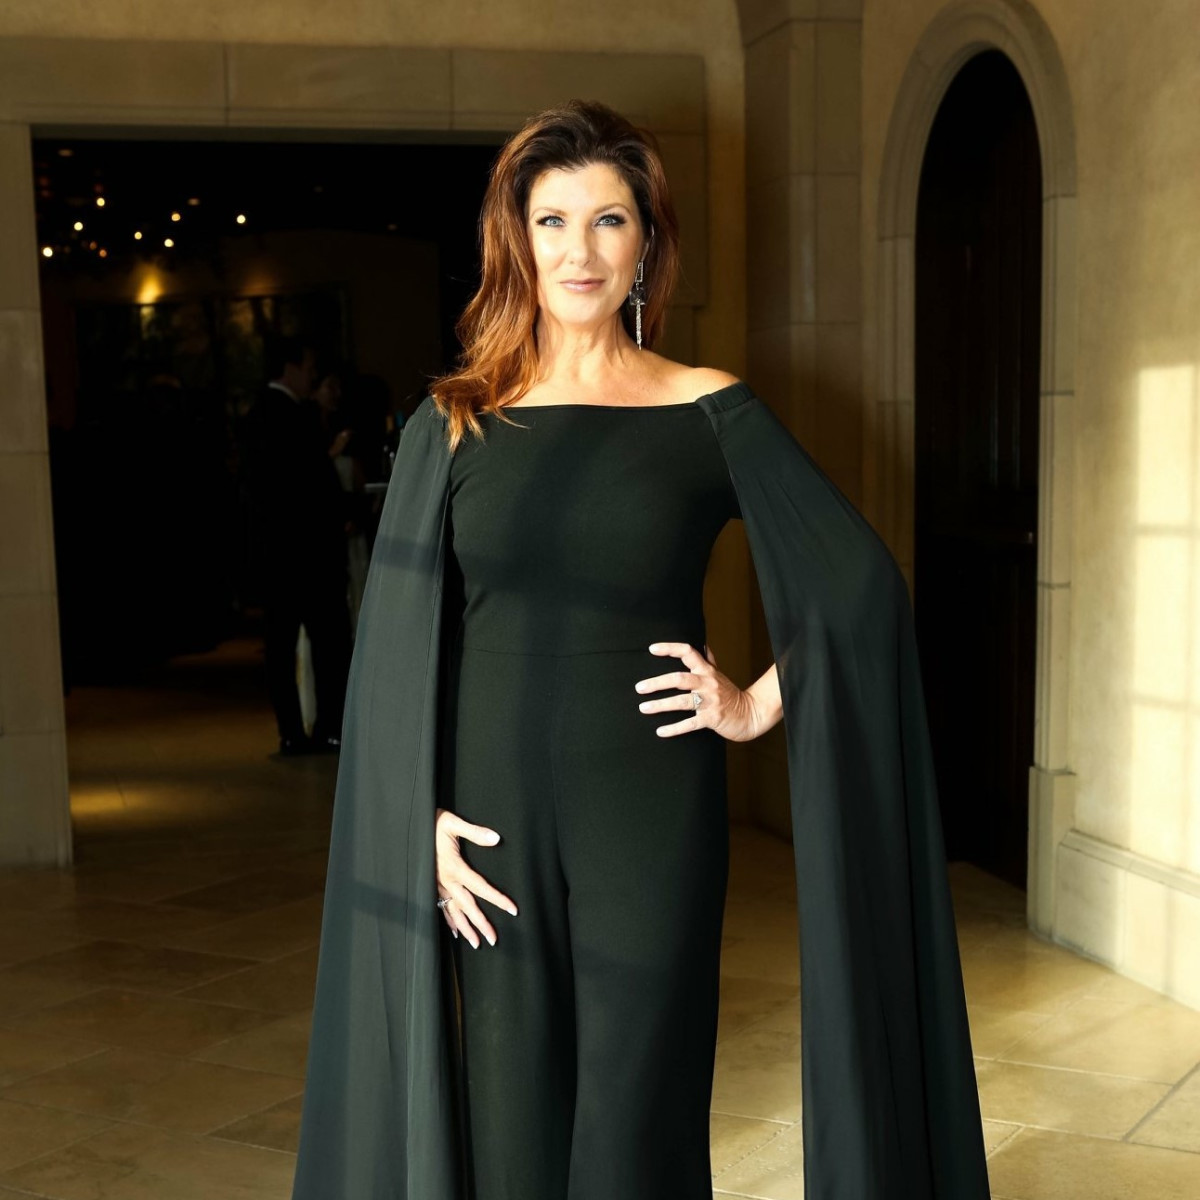 Fashion Stars for a Cause 2018, Cynthia Smoot